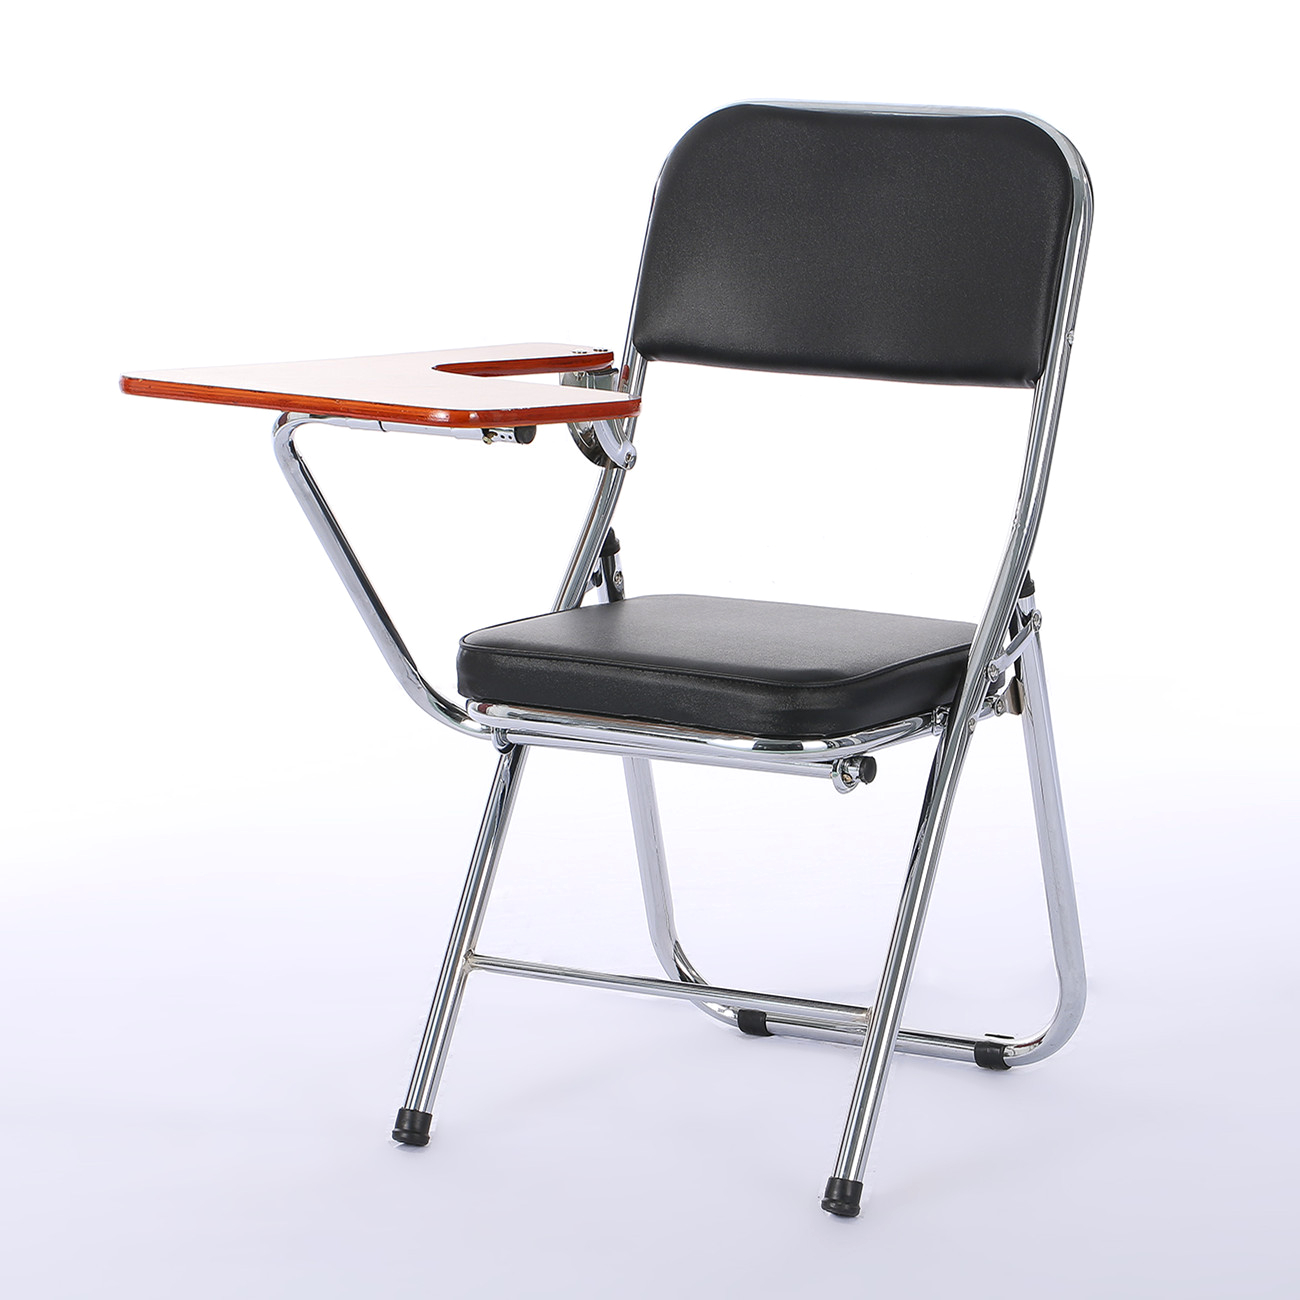 Folding Desk Chair Childrens Toy Table And Chairs Modern Fashion Staff Training With Writing Board